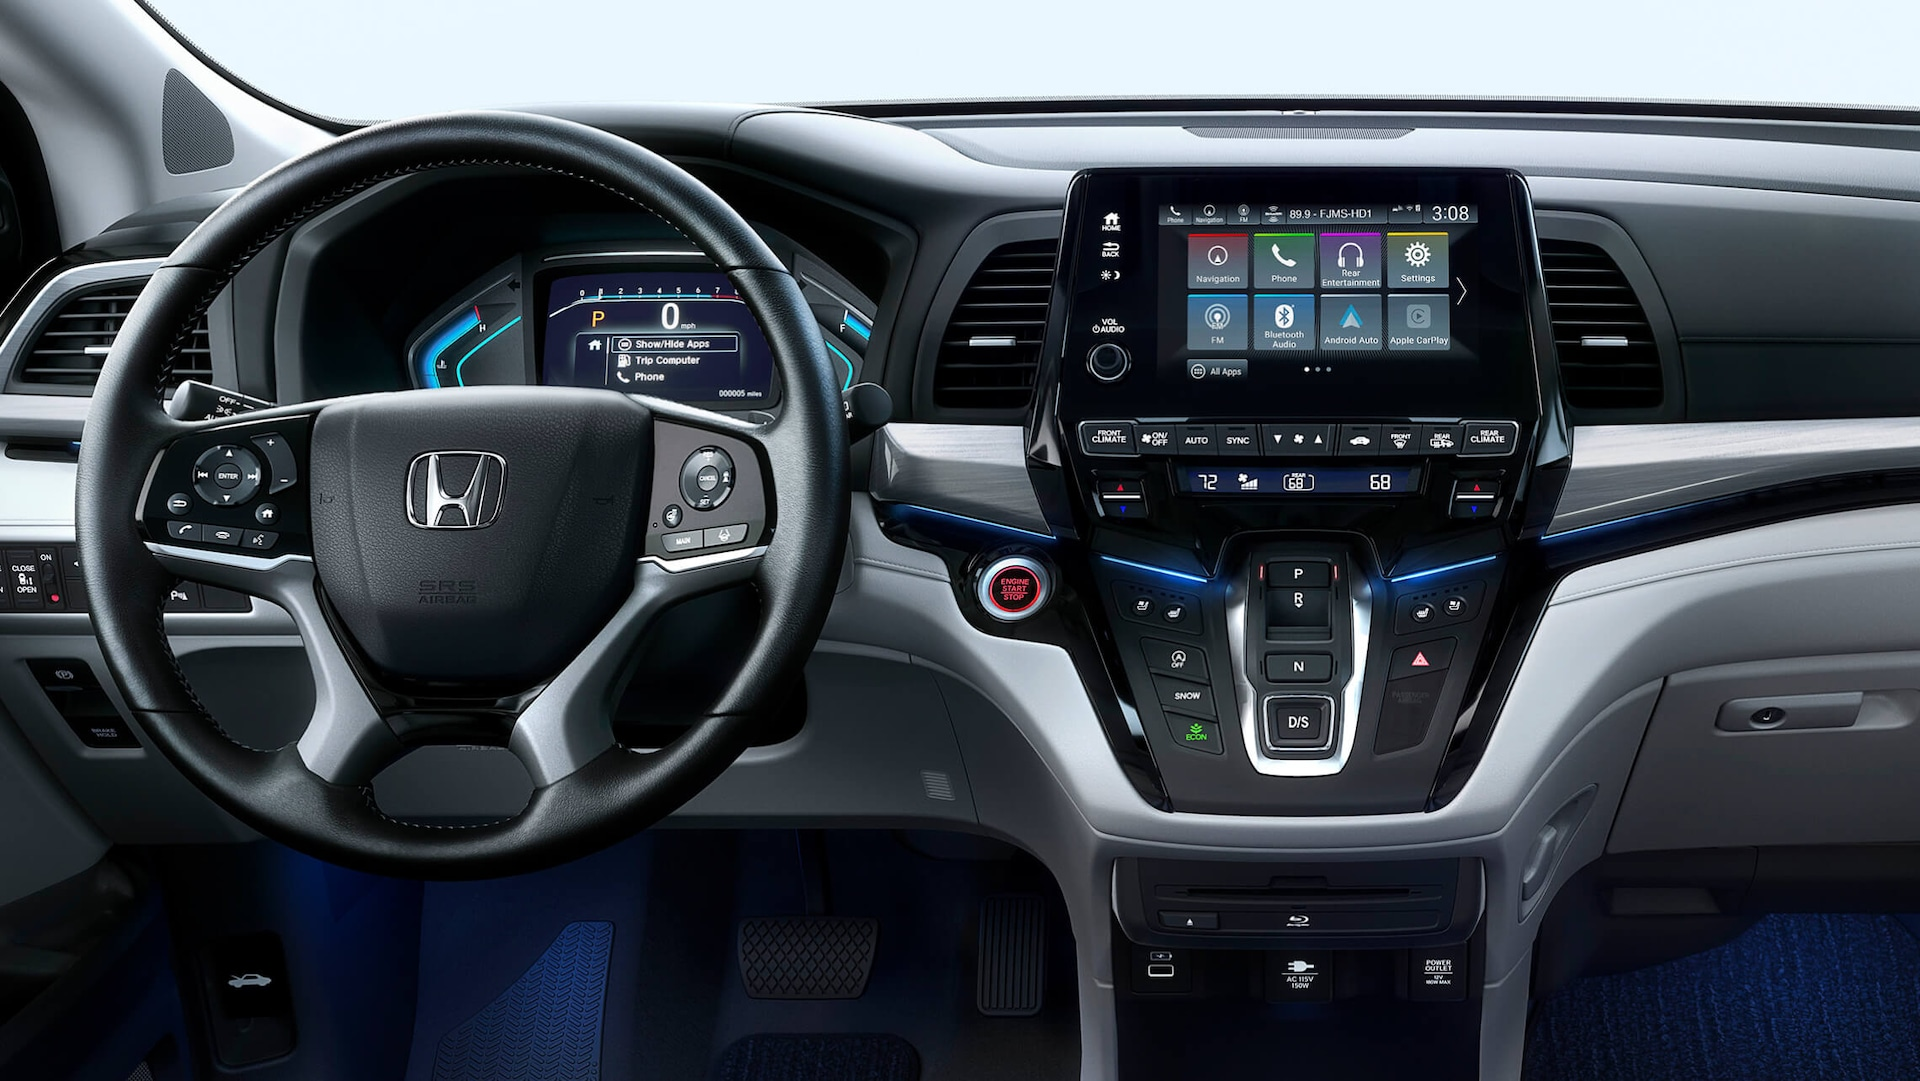 Interior rear close-up view of steering wheel and dash in the 2022 Honda Odyssey Elite with Gray Leather.